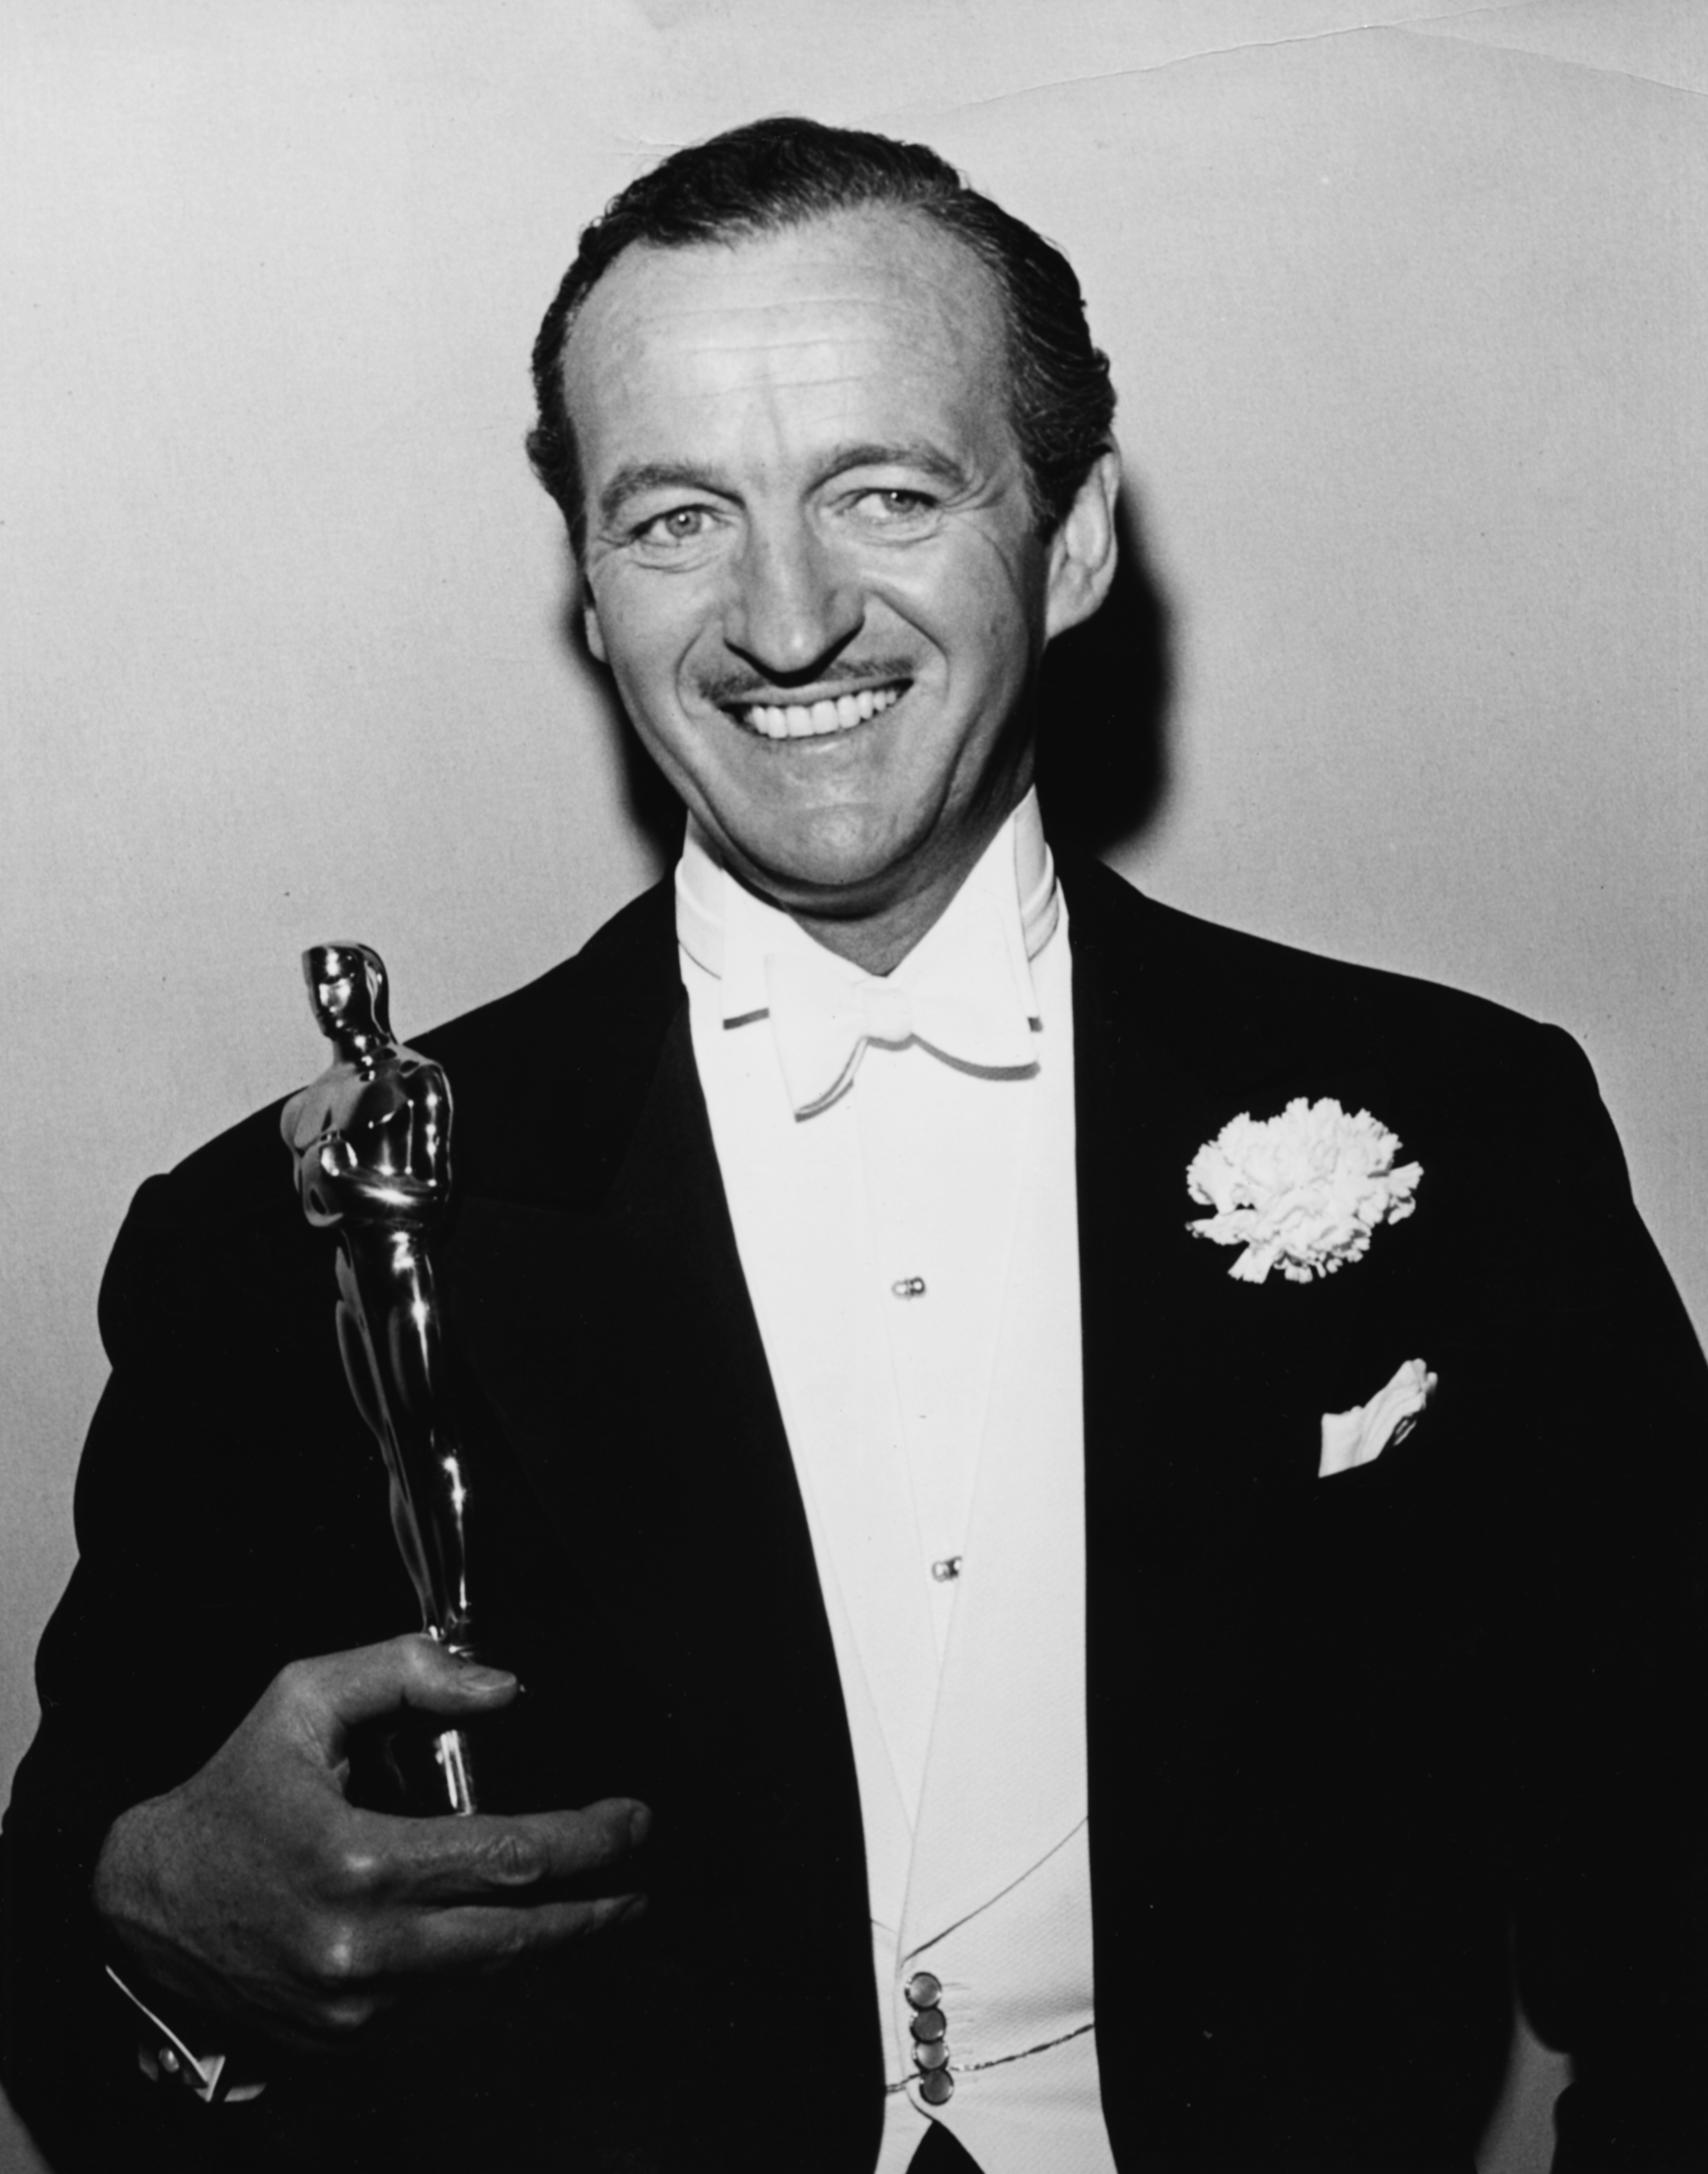 Actor David Niven holding his Best Actor Oscar for the film 'Separate Tables', at the 31st Academy Awards, Los Angeles, April 6th 1959.